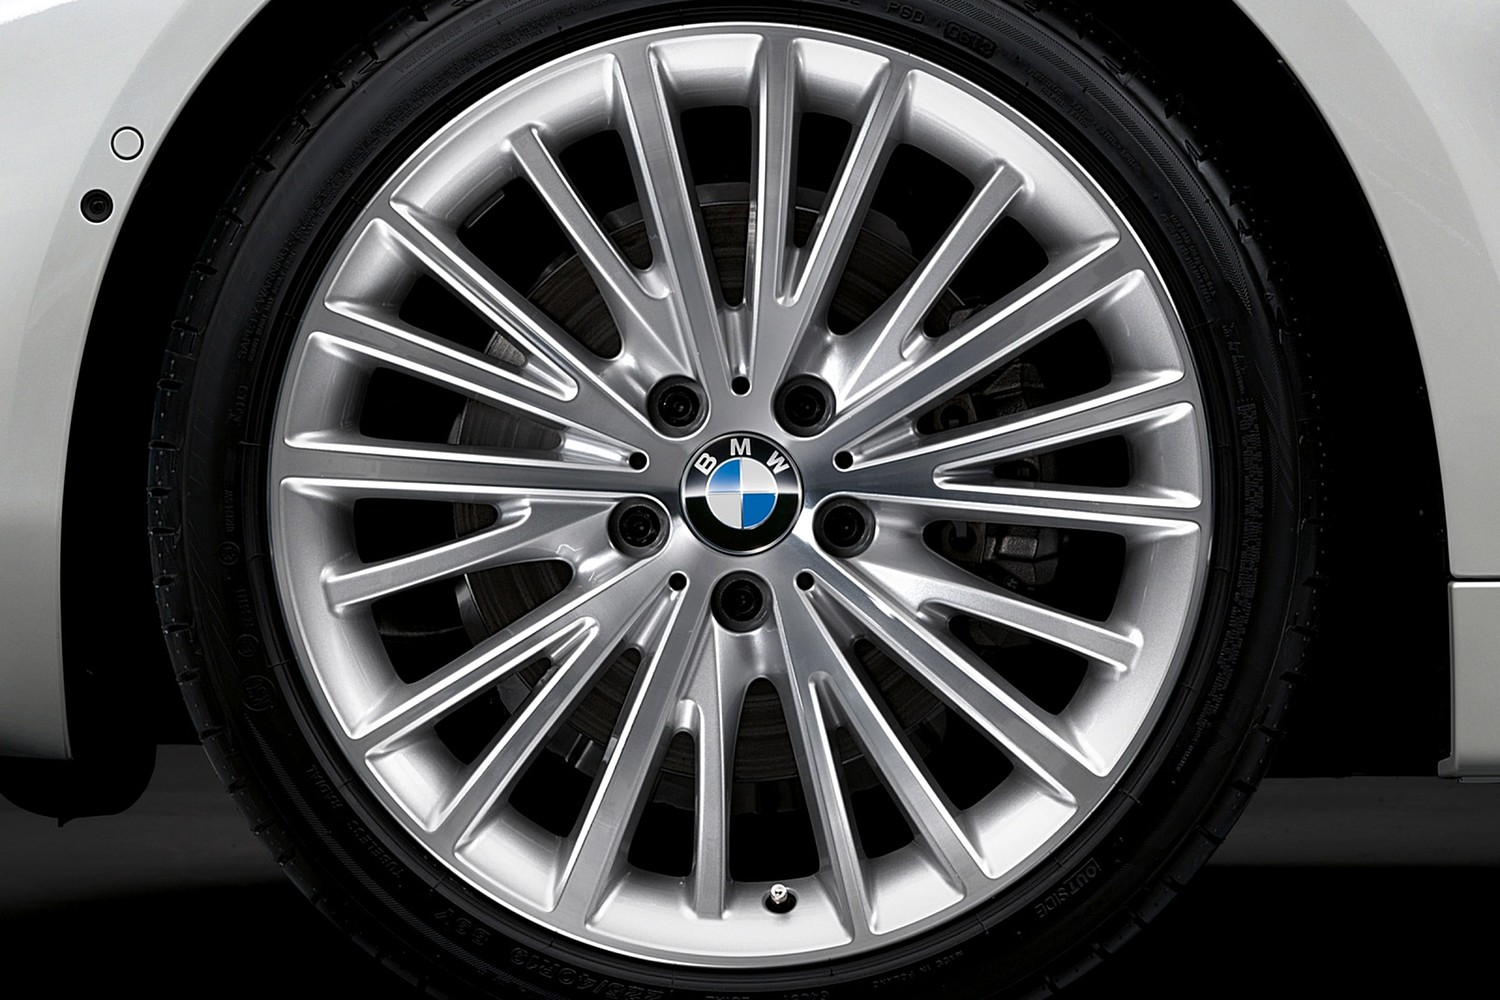 2017 BMW 4 Series 430i SULEV Convertible Wheel. Luxury Line Package Shown.